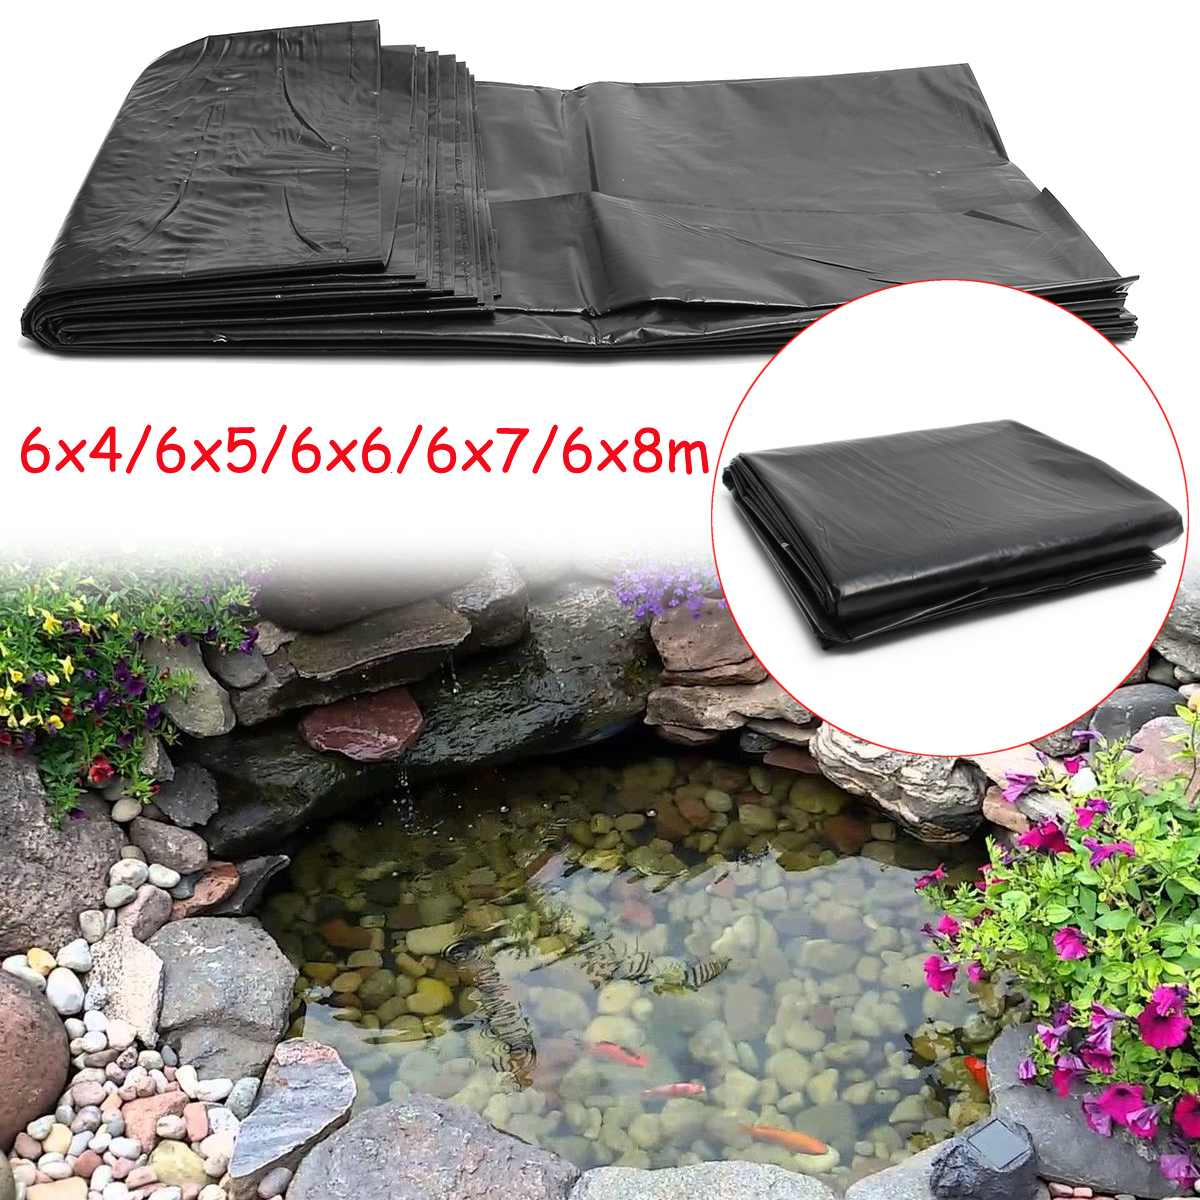 Pond Liner HDPE Rubber Cloth Membrane Landscaping-Pool-Thick Fish Waterproof 6x5m/6x4m